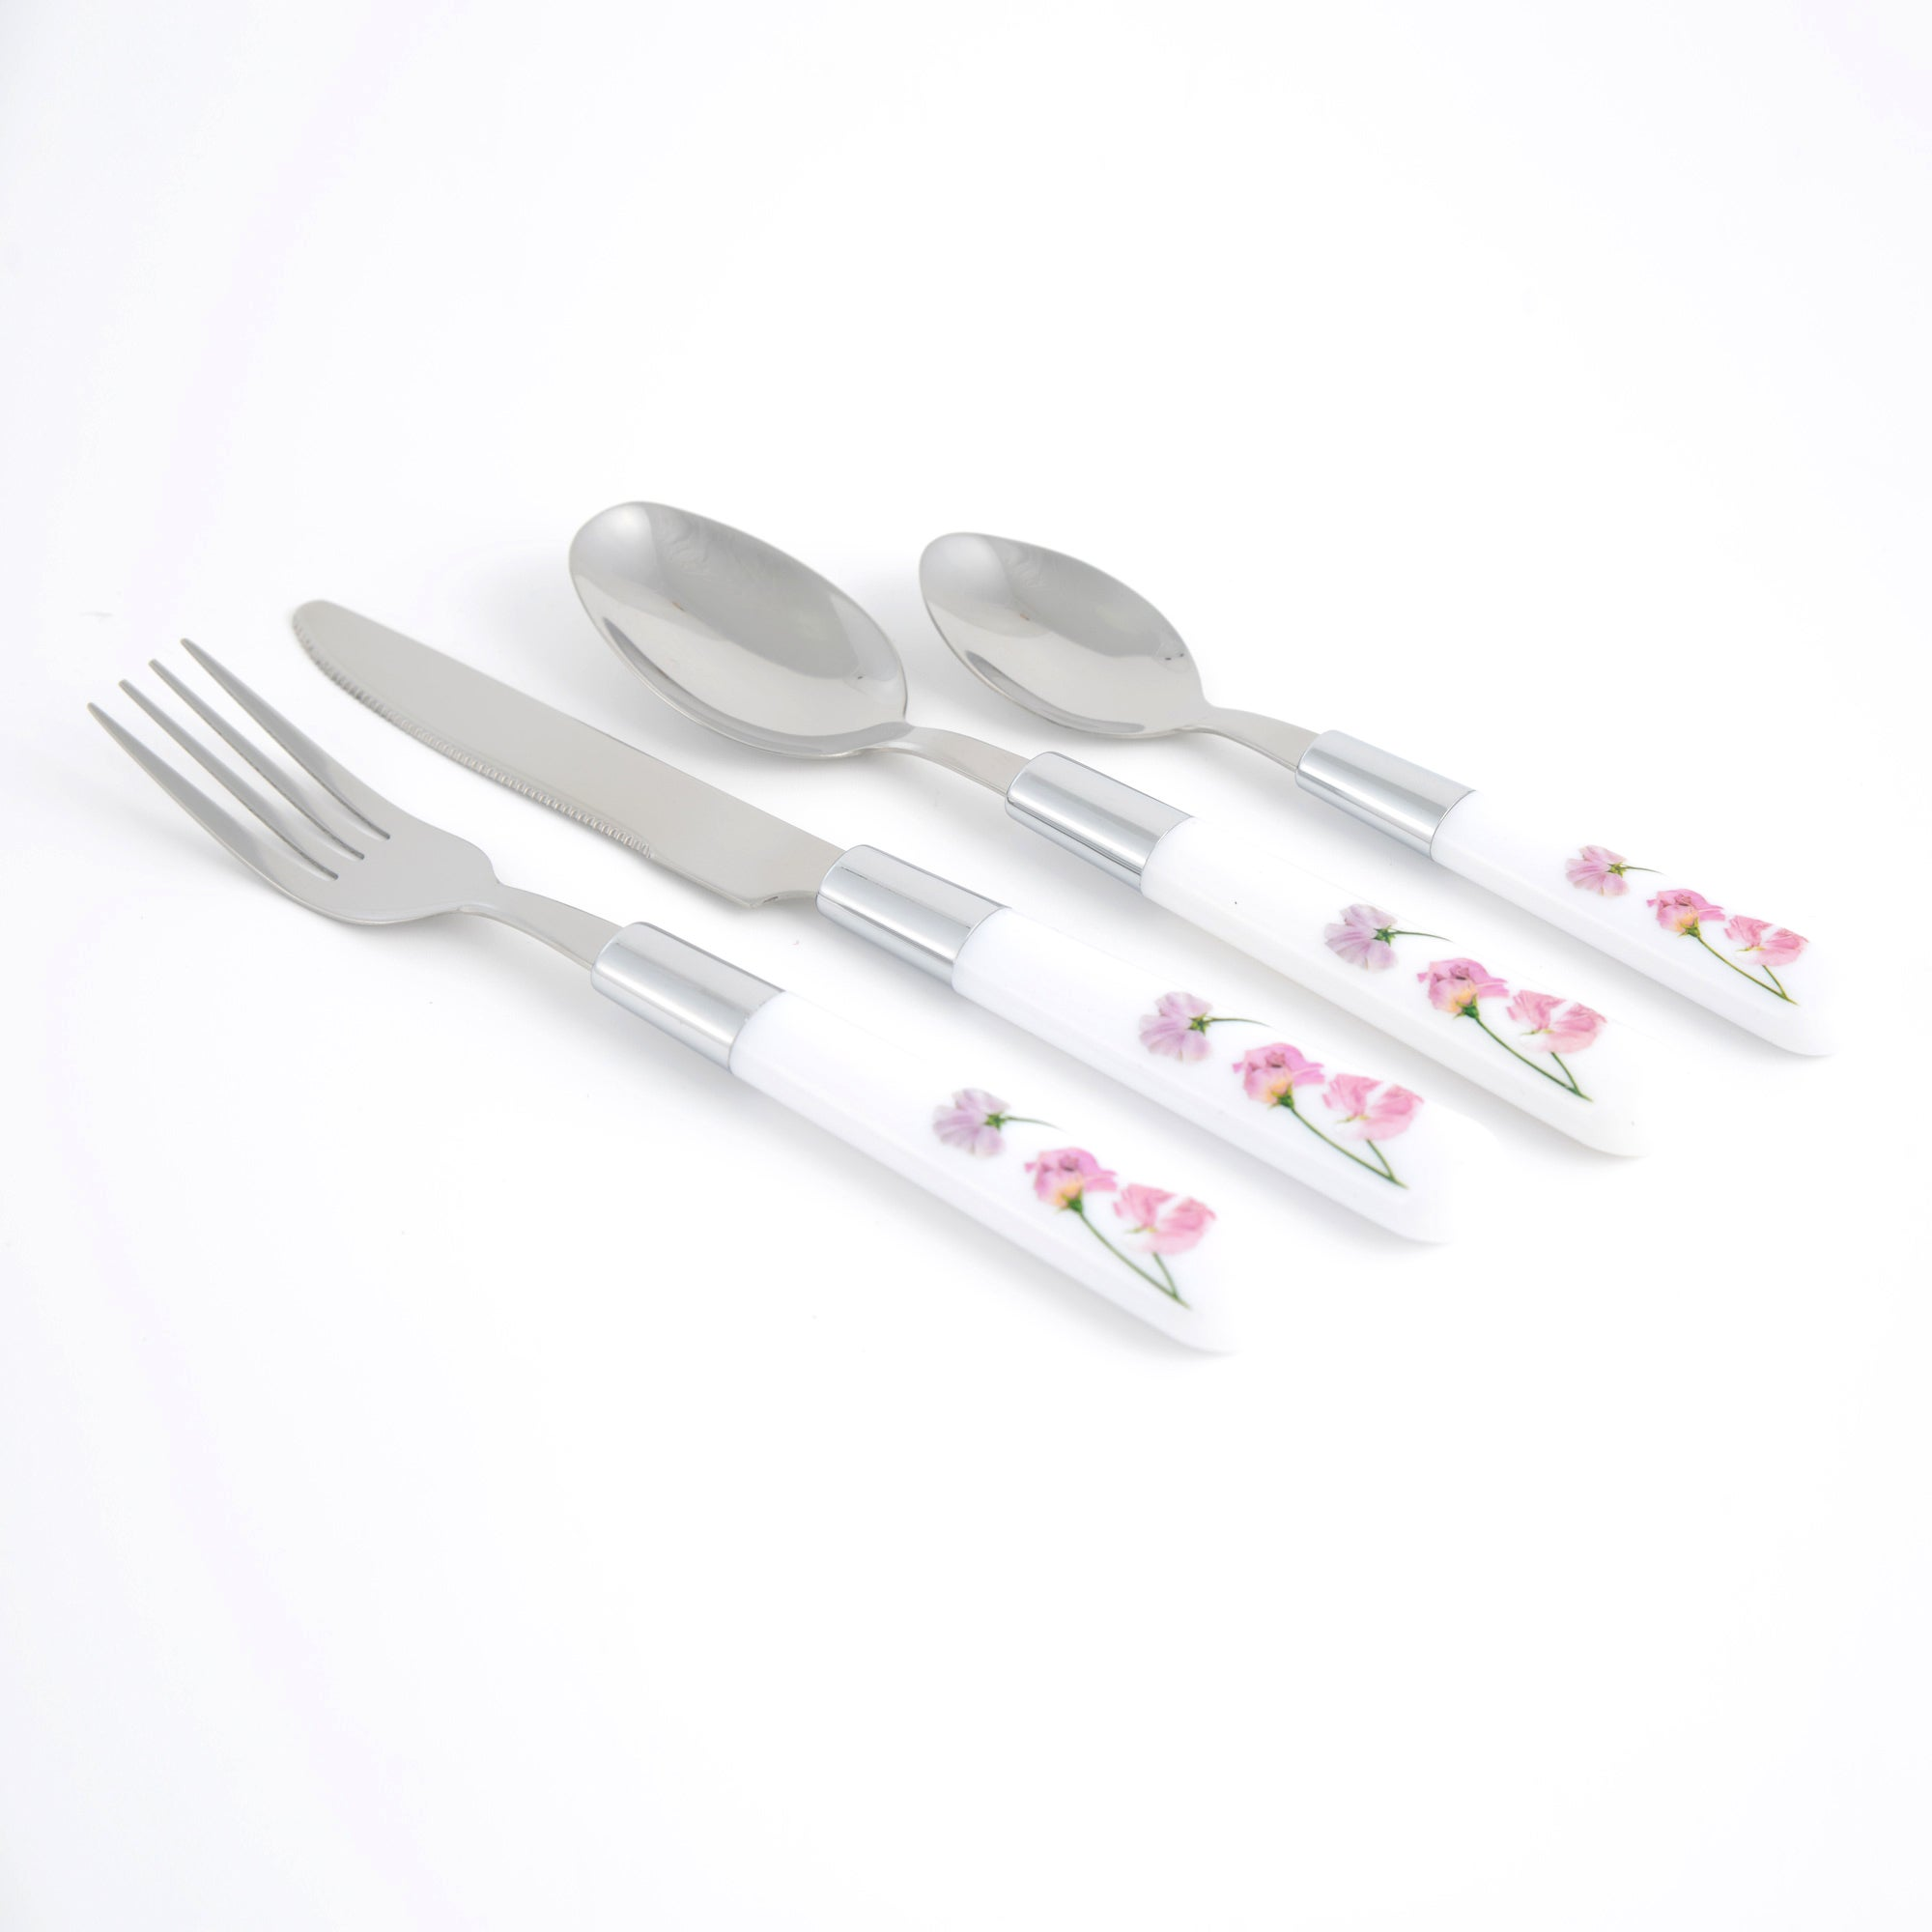 Sweet Pea Collection 16 Piece Cutlery Set